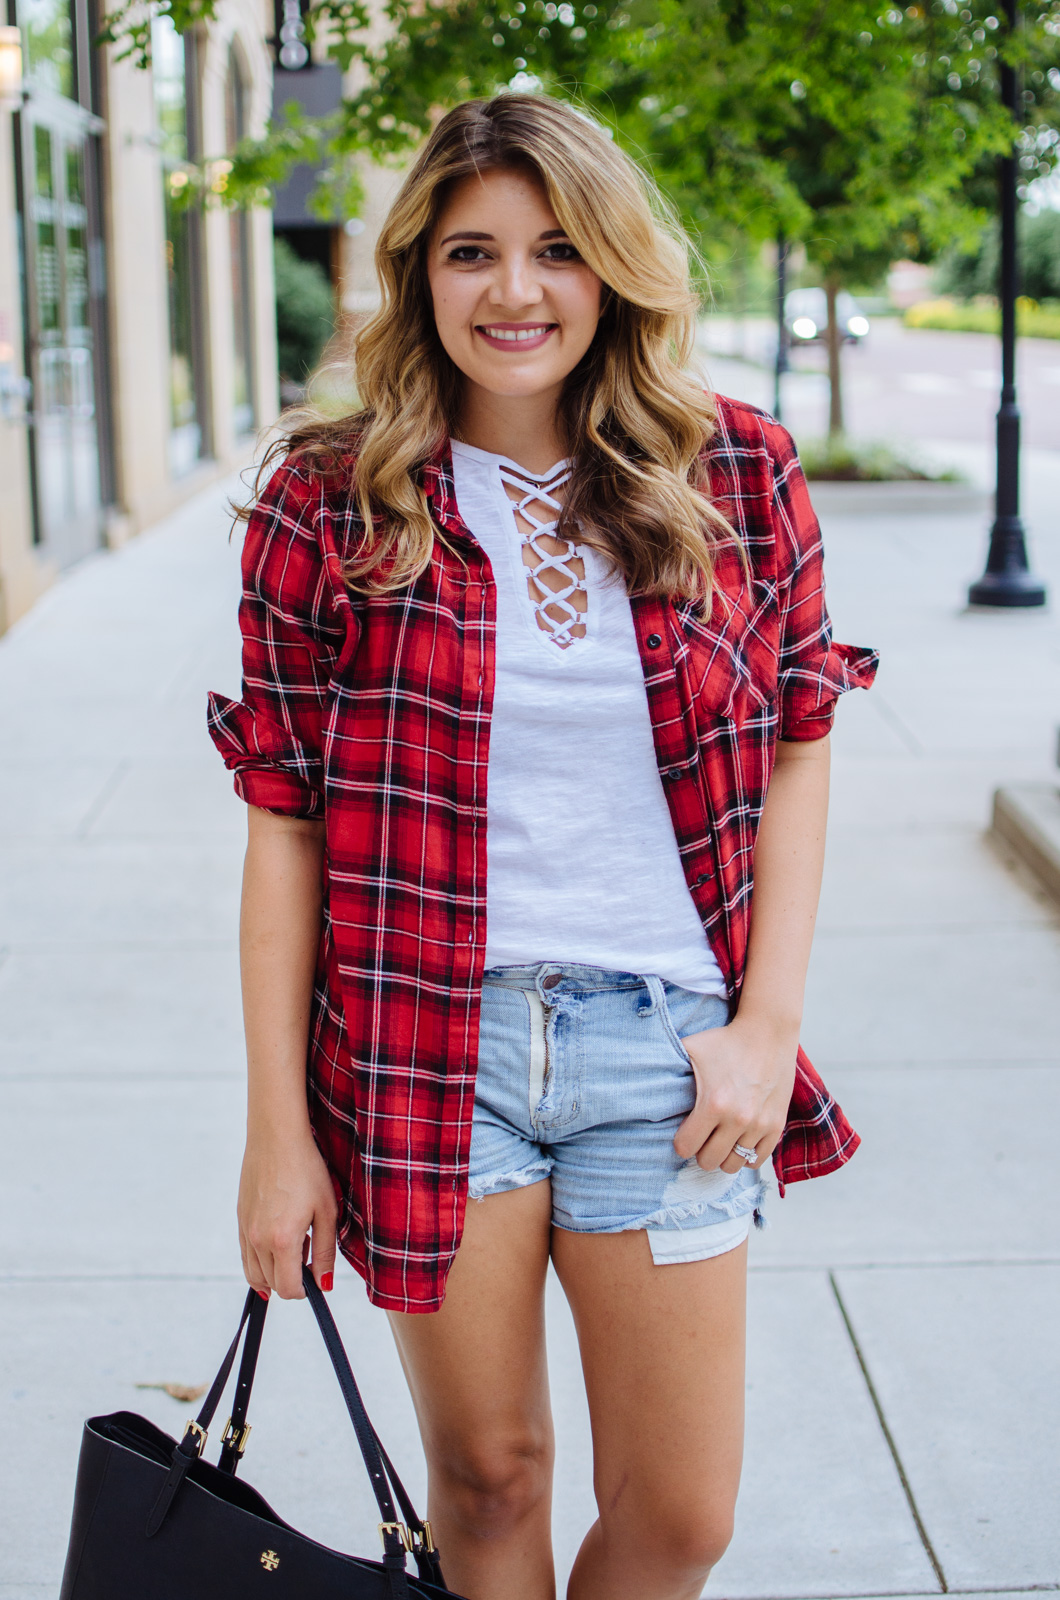 plaid top outfit - how layer plaid for fall | For more cute Fall outfit ideas, go to bylaurenm.com!